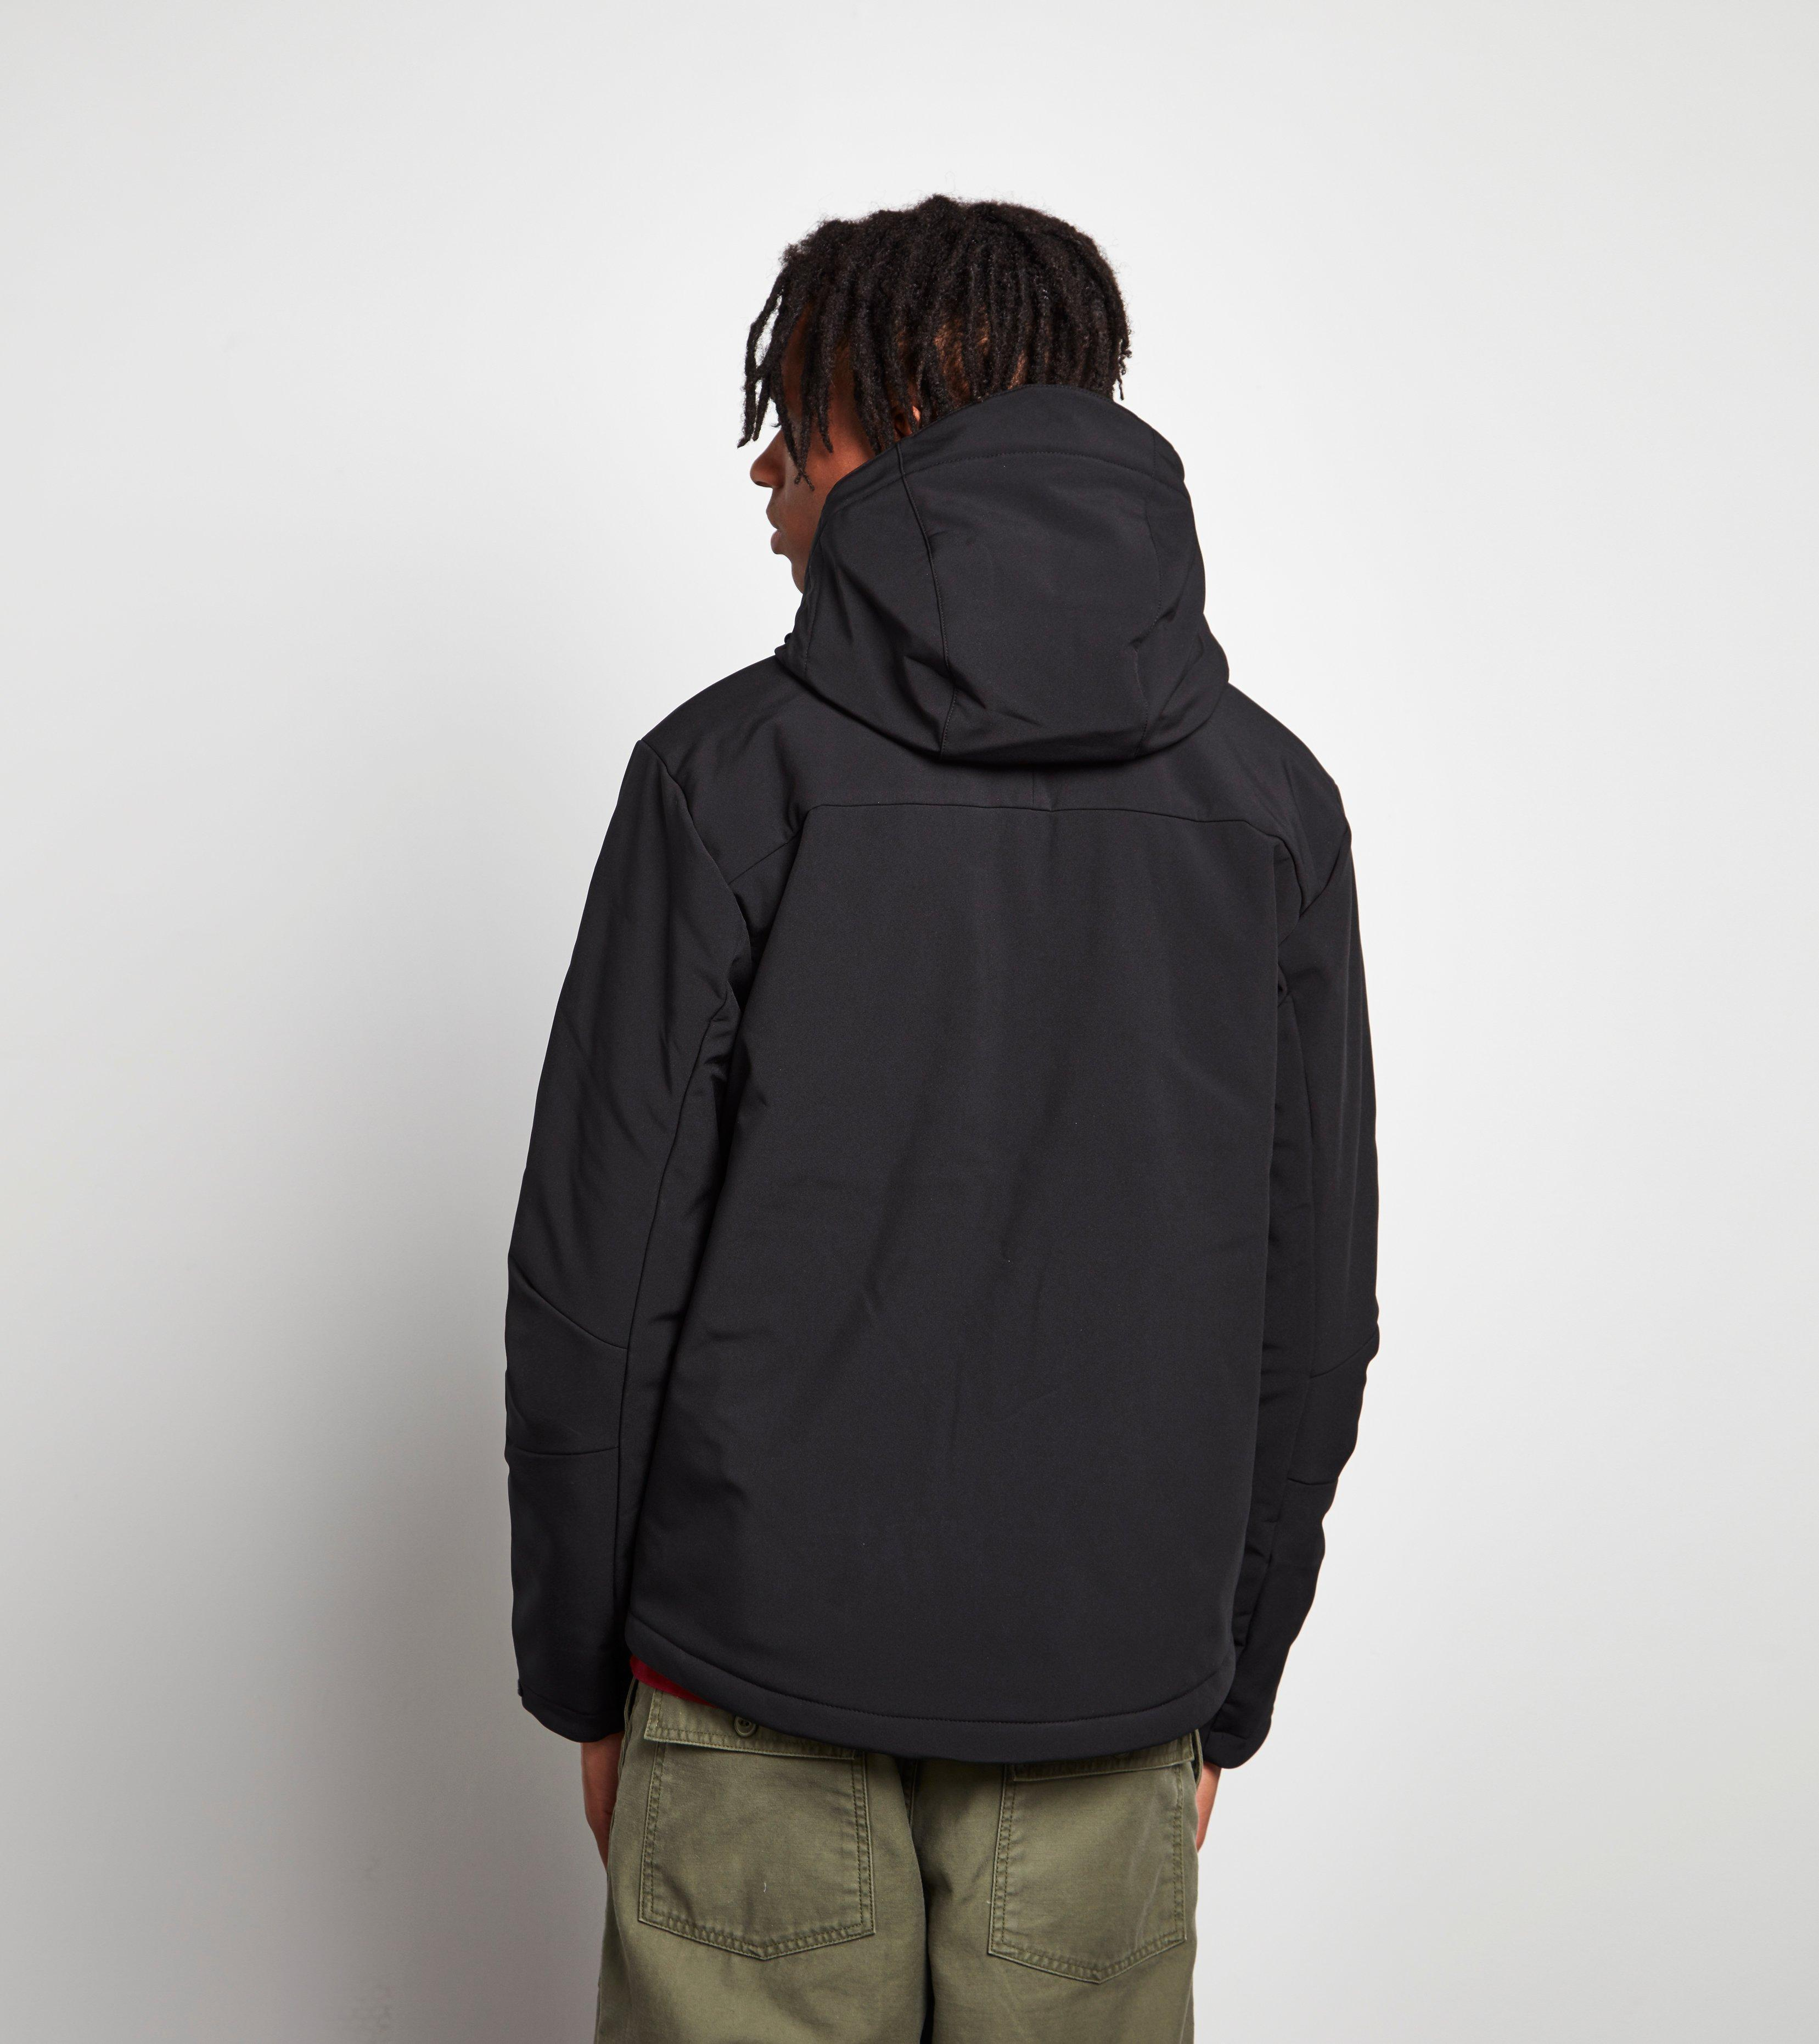 lyst helly hansen paramount insulated softshell jacket in black for men. Black Bedroom Furniture Sets. Home Design Ideas